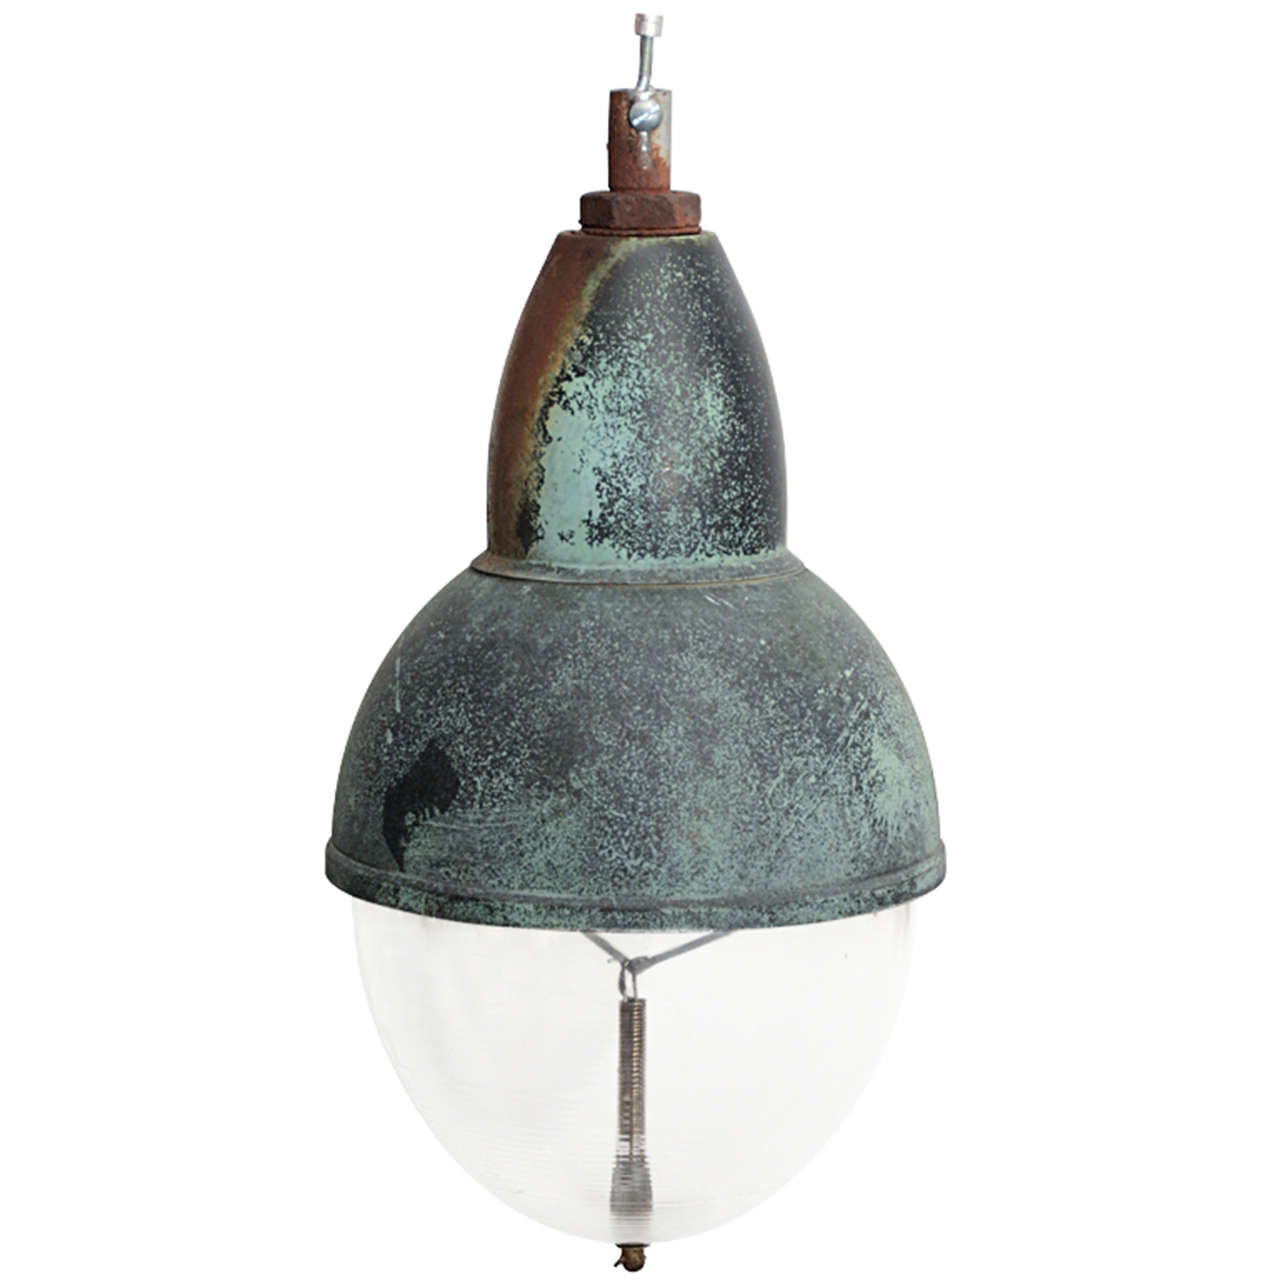 Vintage copper pendant light with glass shade for sale at Vintage pendant lighting